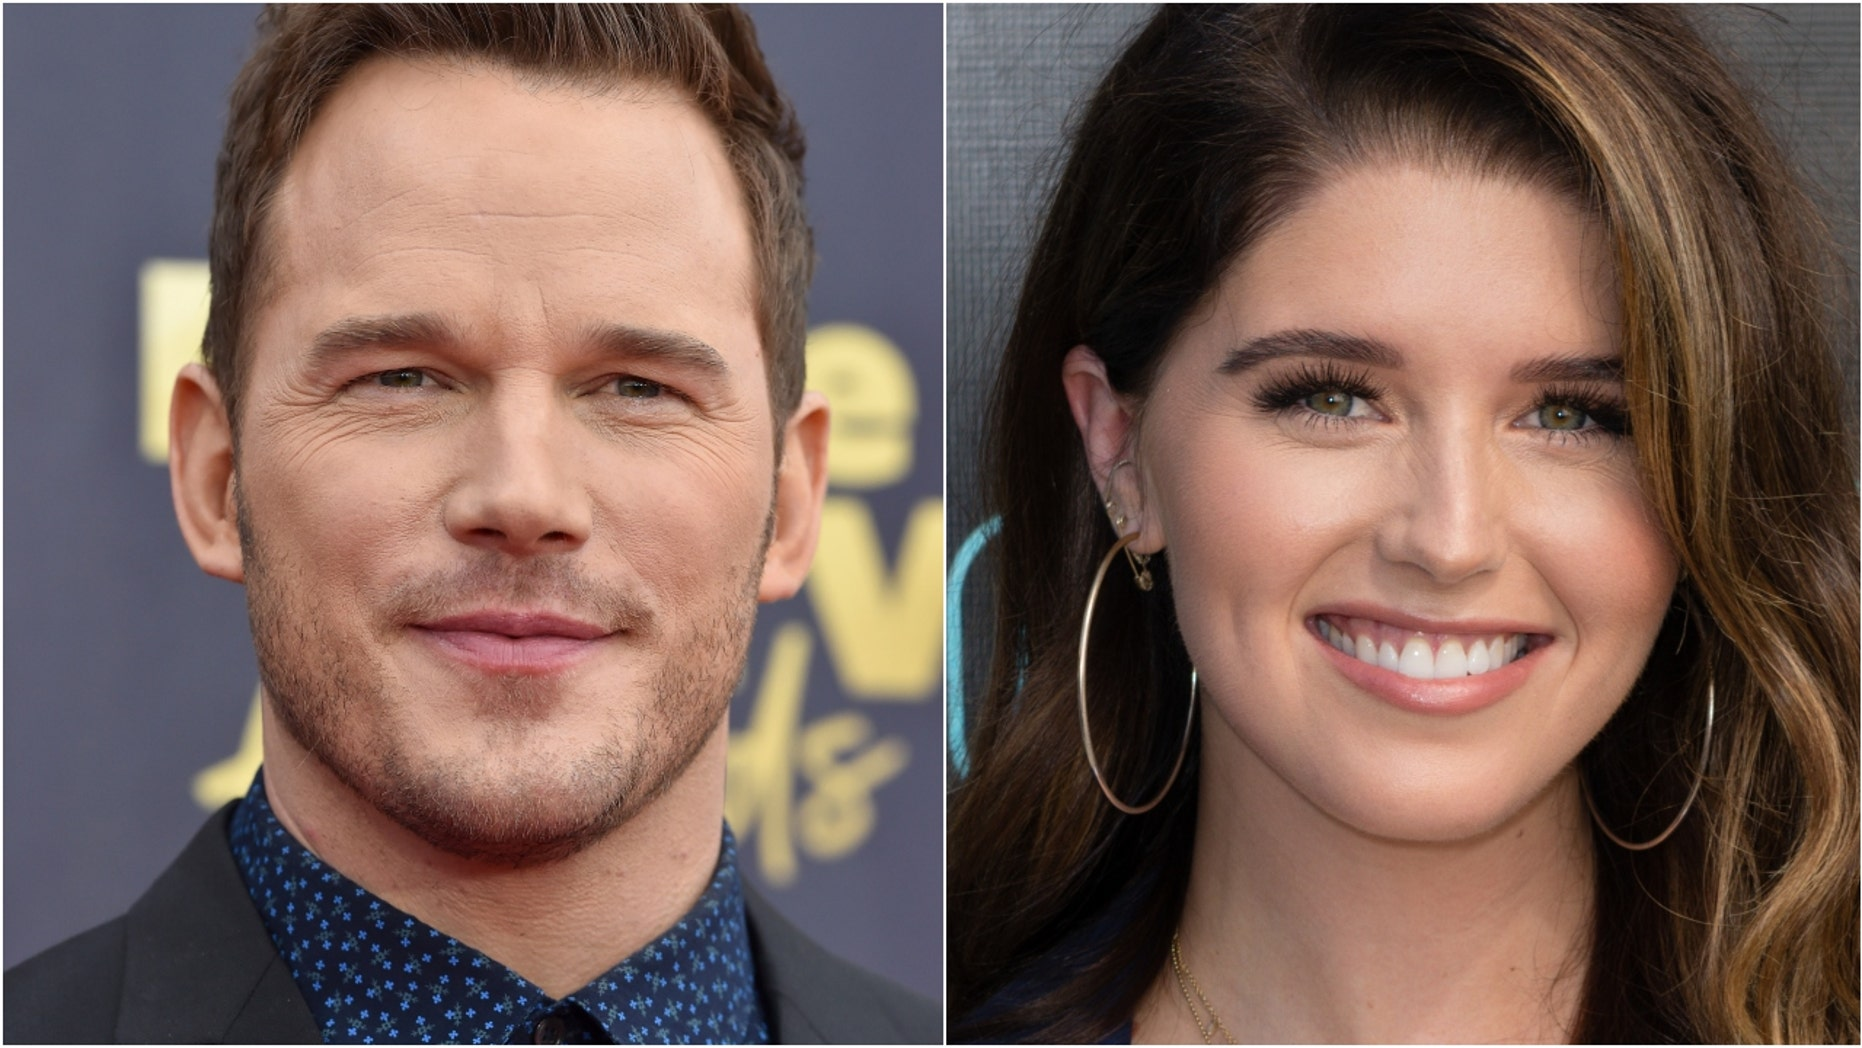 Chris Pratt engaged to Katherine Schwarzenegger: 'I'm thrilled to be marrying you'